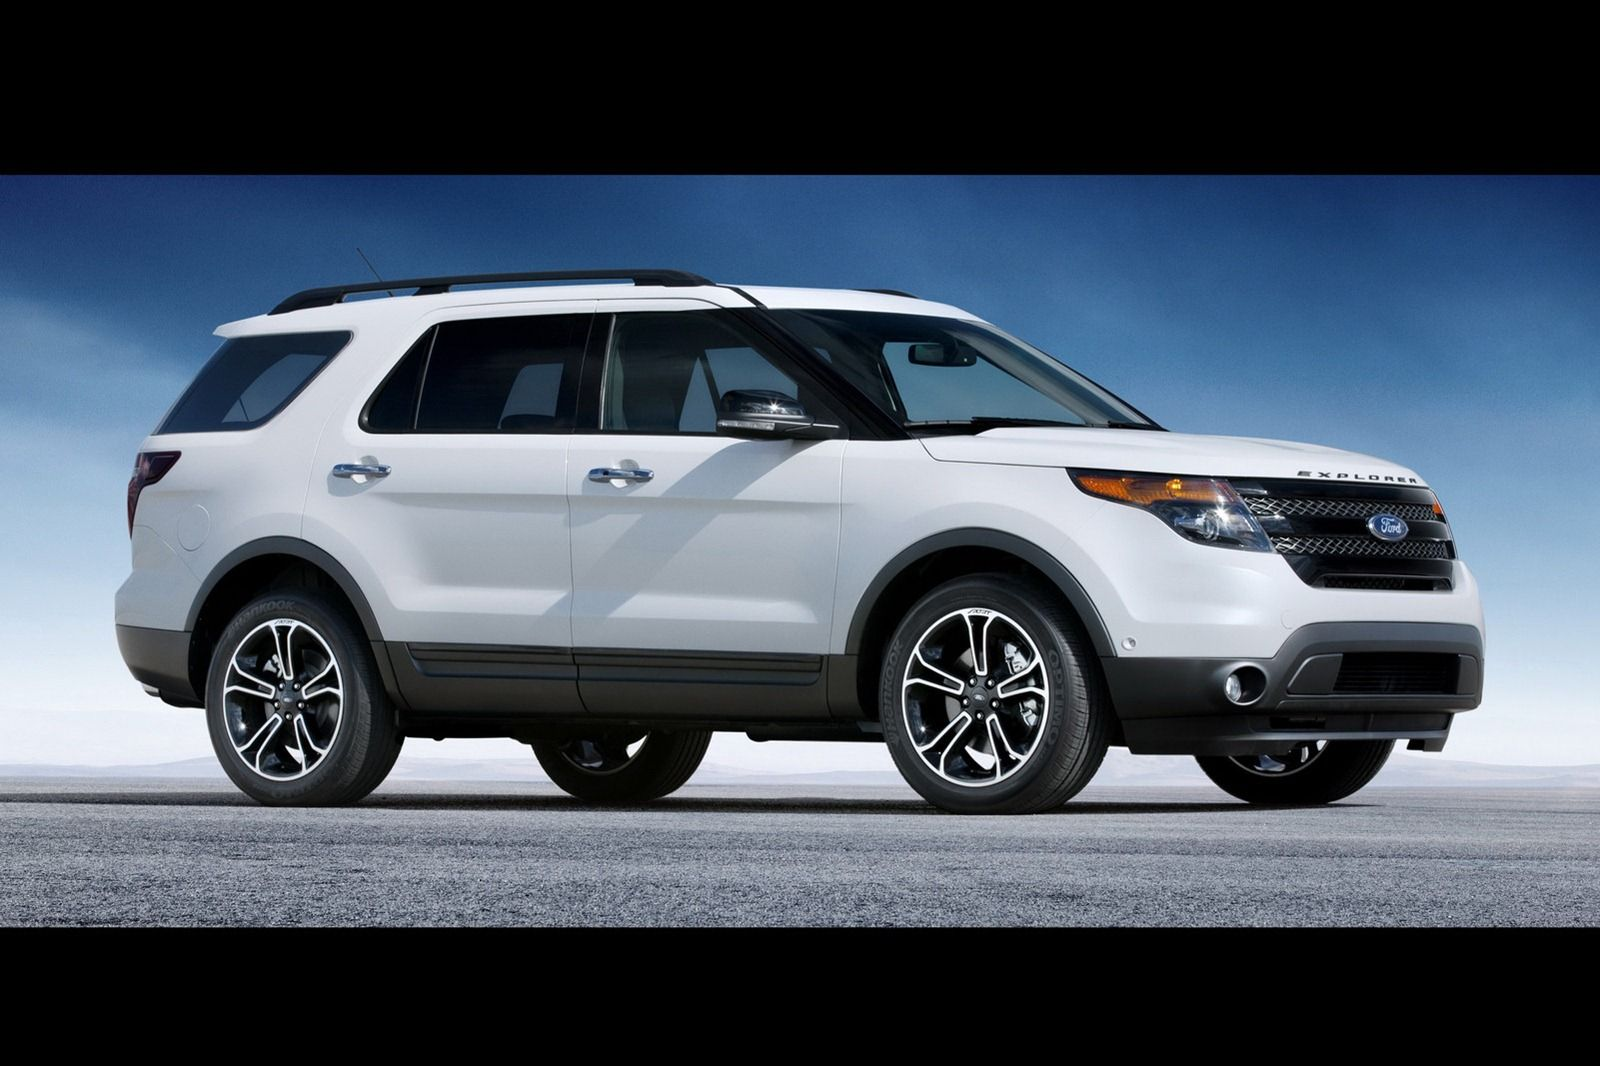 35 best Ford Explorer images on Pinterest | Ford explorer Dream cars and Future car & 35 best Ford Explorer images on Pinterest | Ford explorer Dream ... markmcfarlin.com